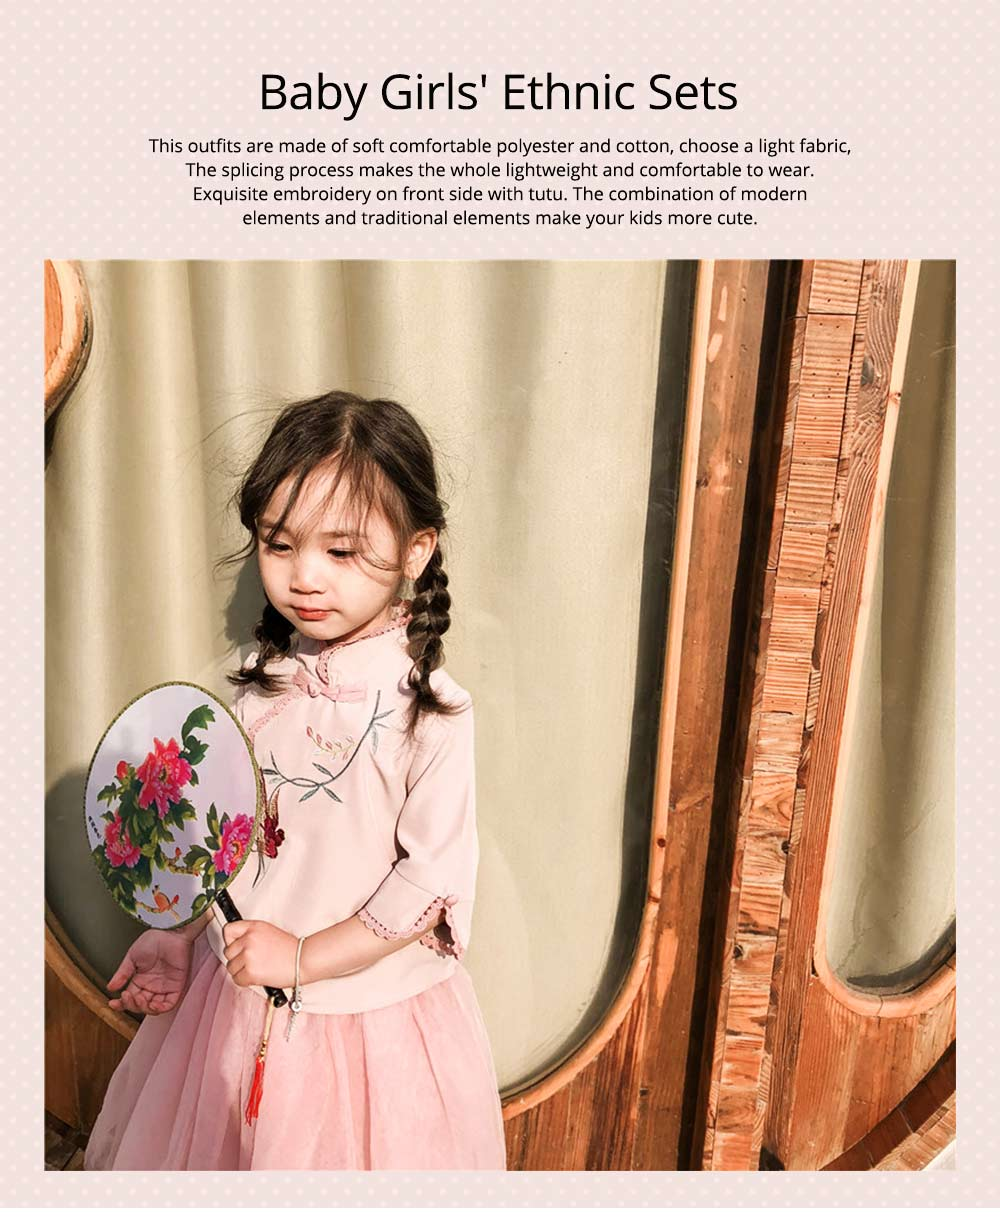 Baby Girls' Ethnic Sets Two-Piece Improved Hanfu Traditional Costume Stand Collar Embroidered Tops + Skirt 0